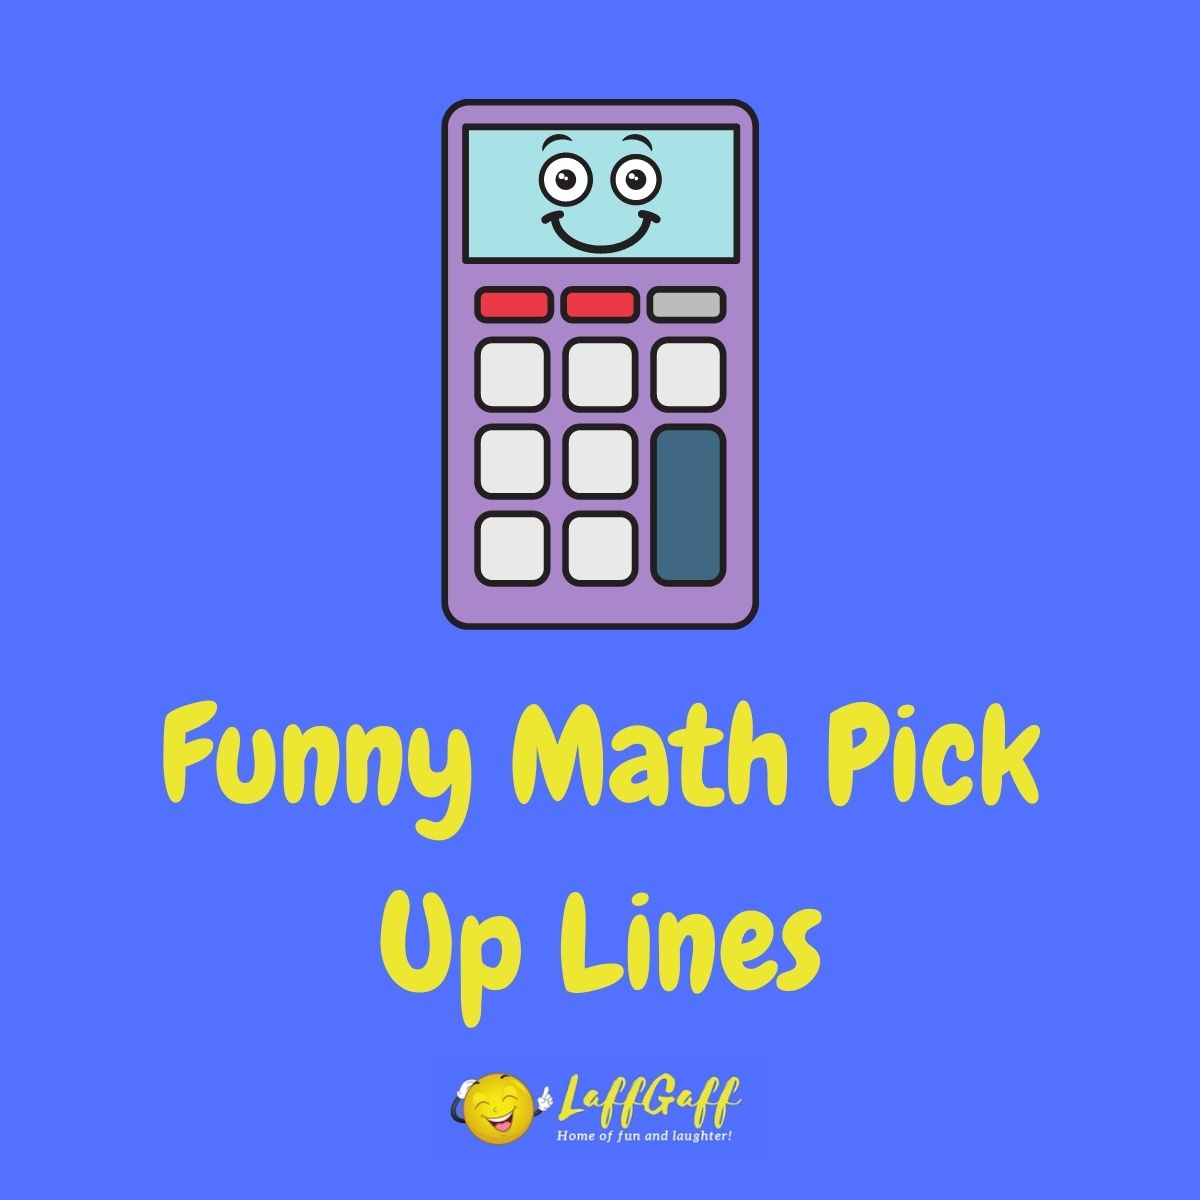 Featured image for a page of funny math pick up lines.